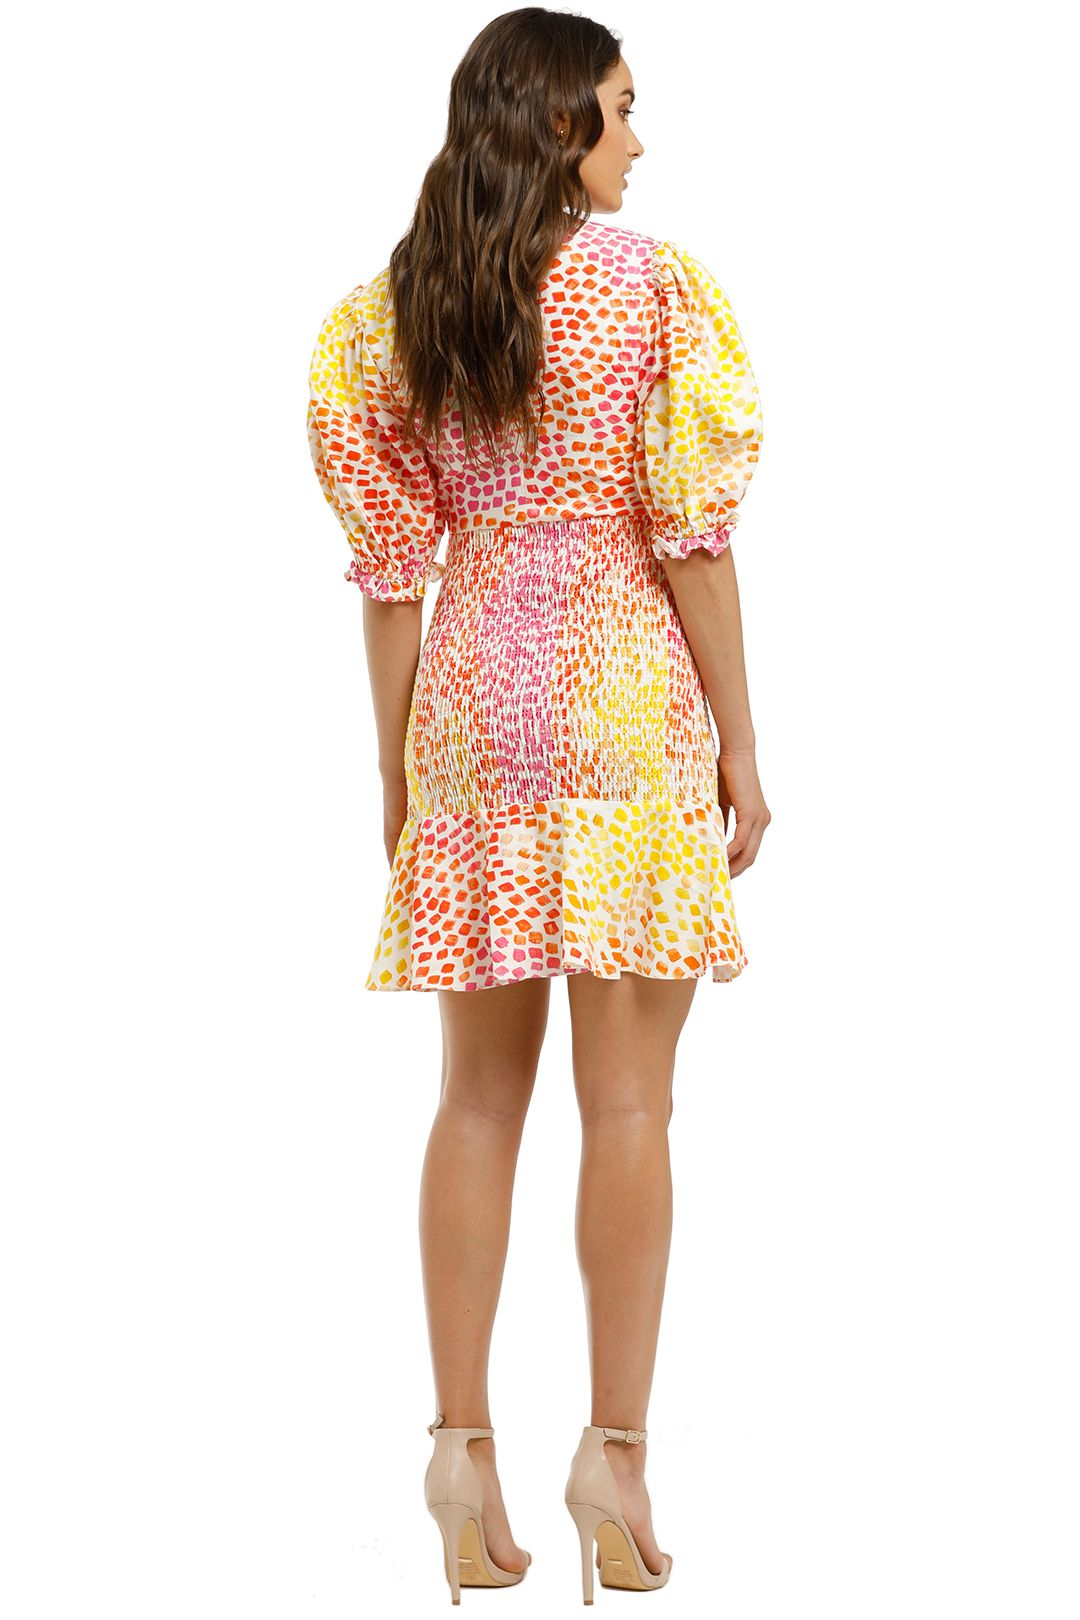 Ministry-of-Style-Gazania-Mini-Dress-Pink-Yellow-Back